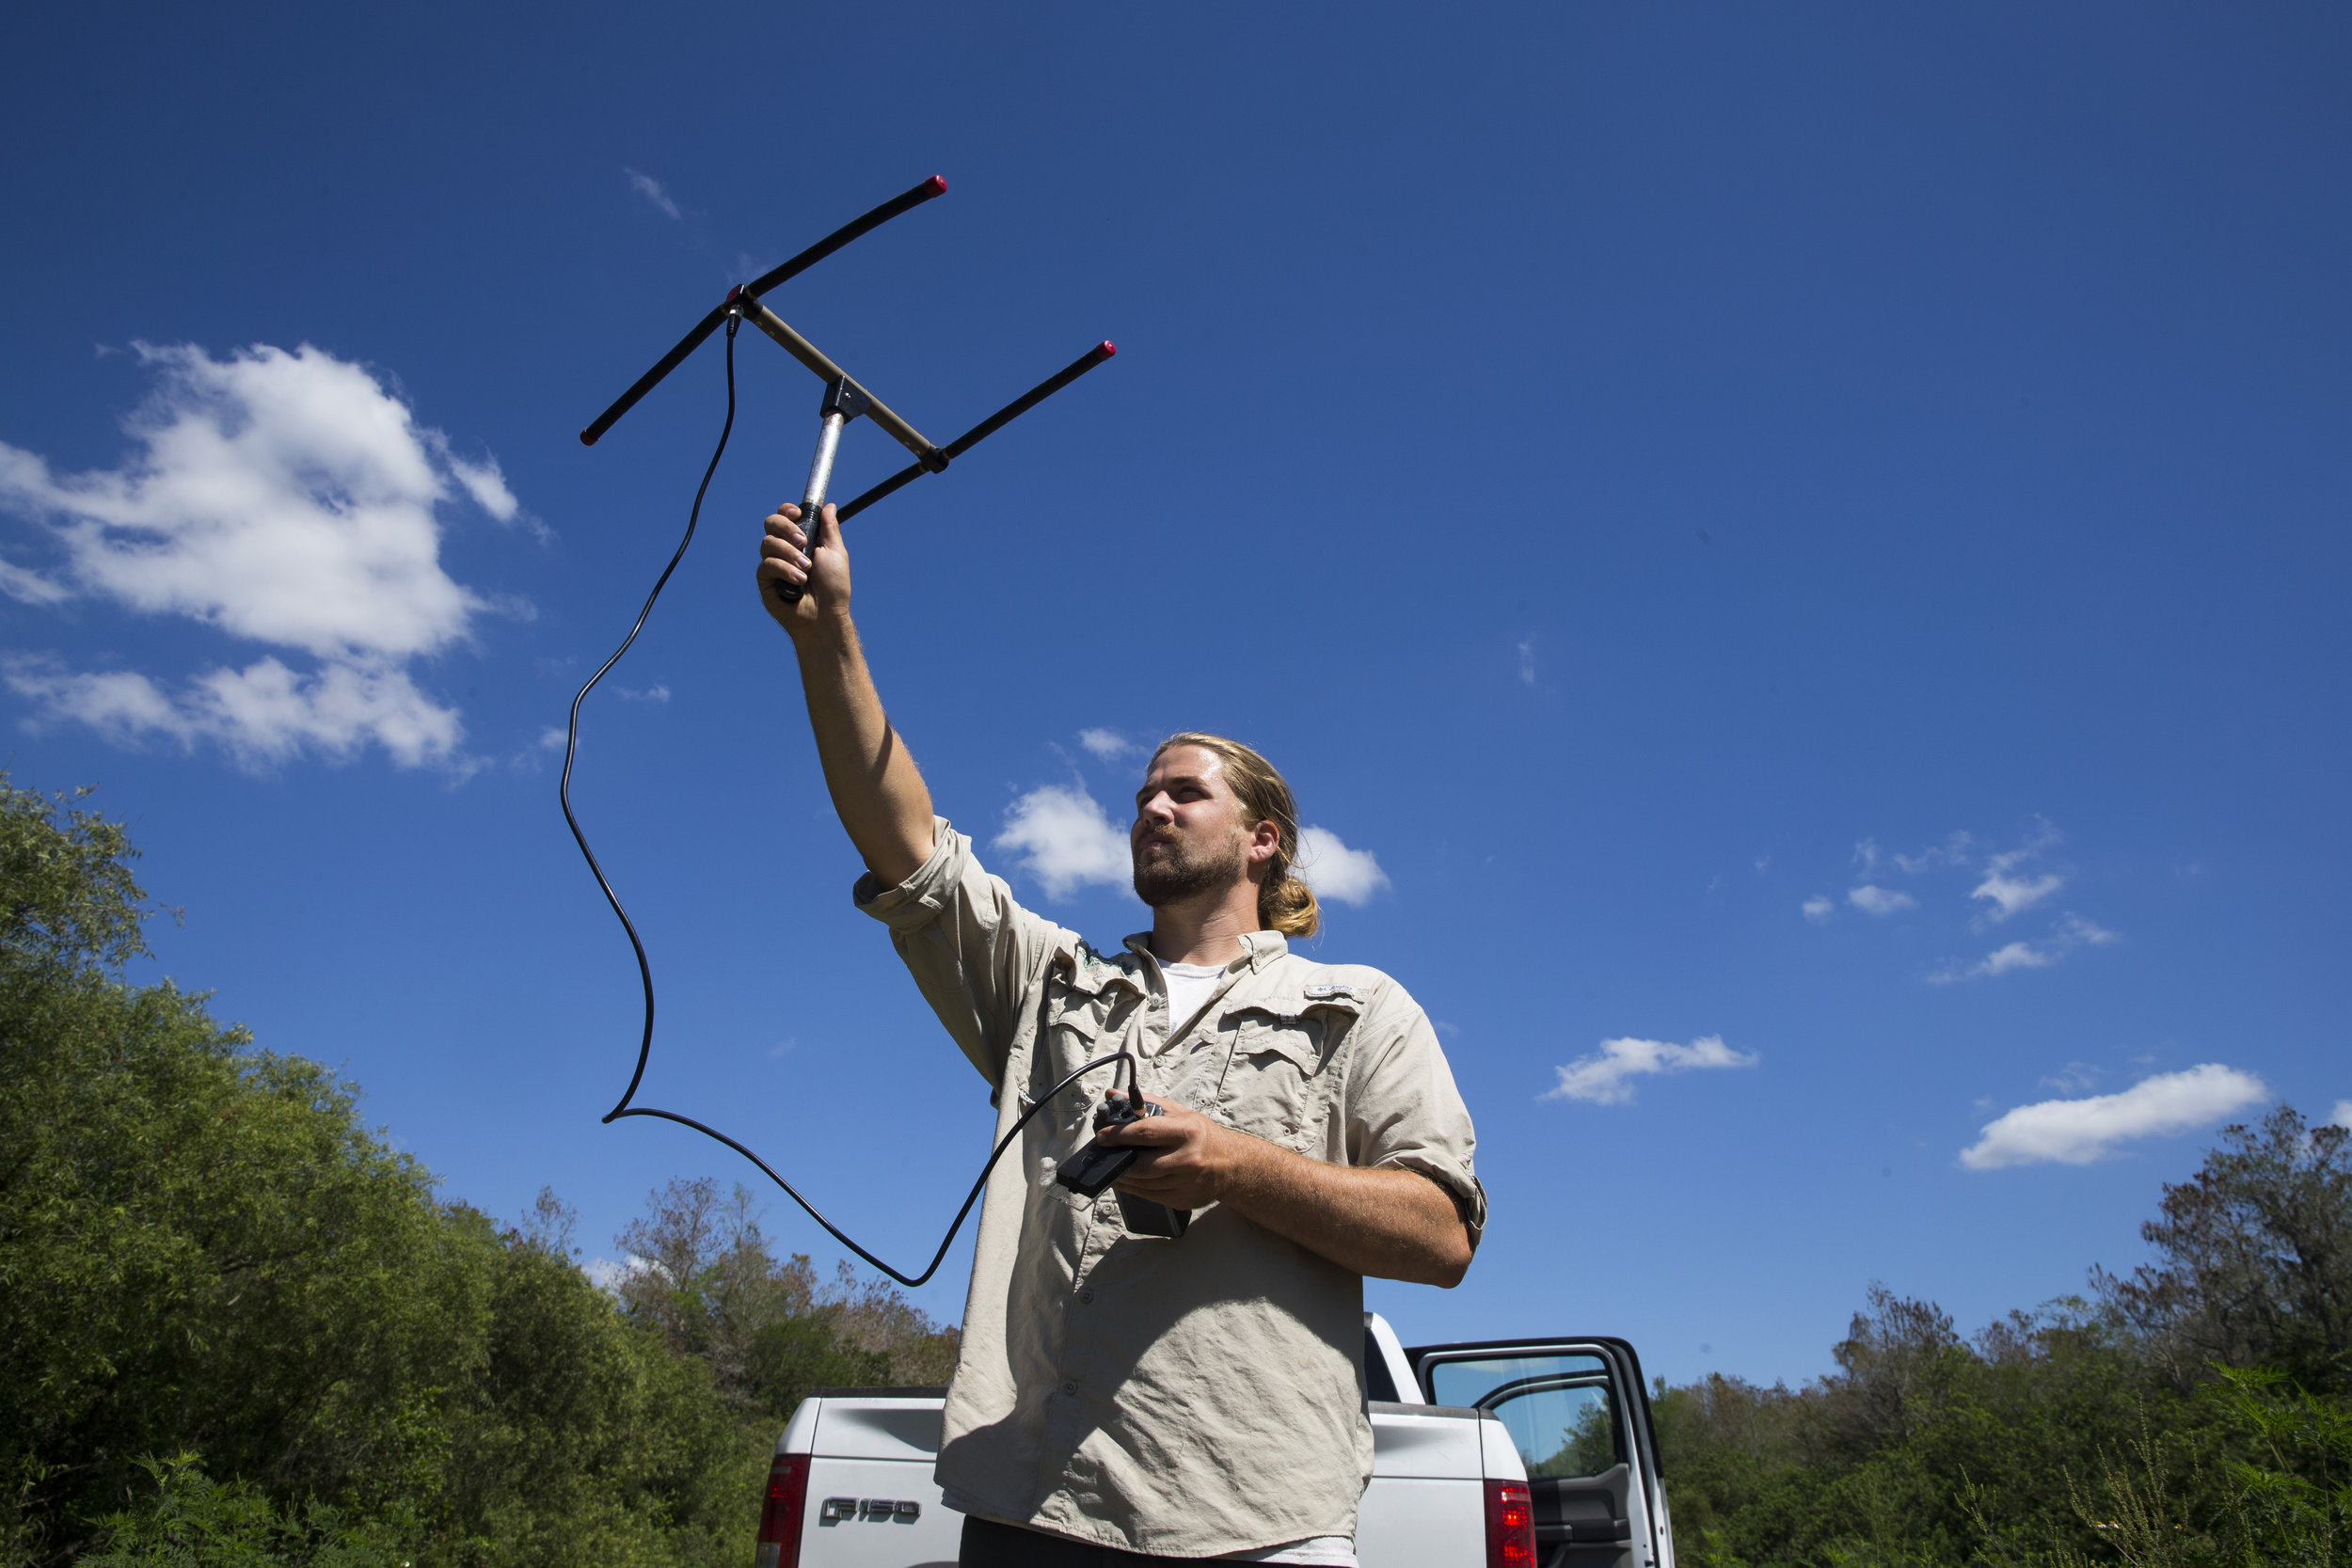 Ian Easterling, 25, a conservation associate with the Conservancy of Southwest Florida, raises an antenna to monitor Burmese pythons through radio telemetry along the edge of urban Collier Country on Tuesday, March 28, 2017.